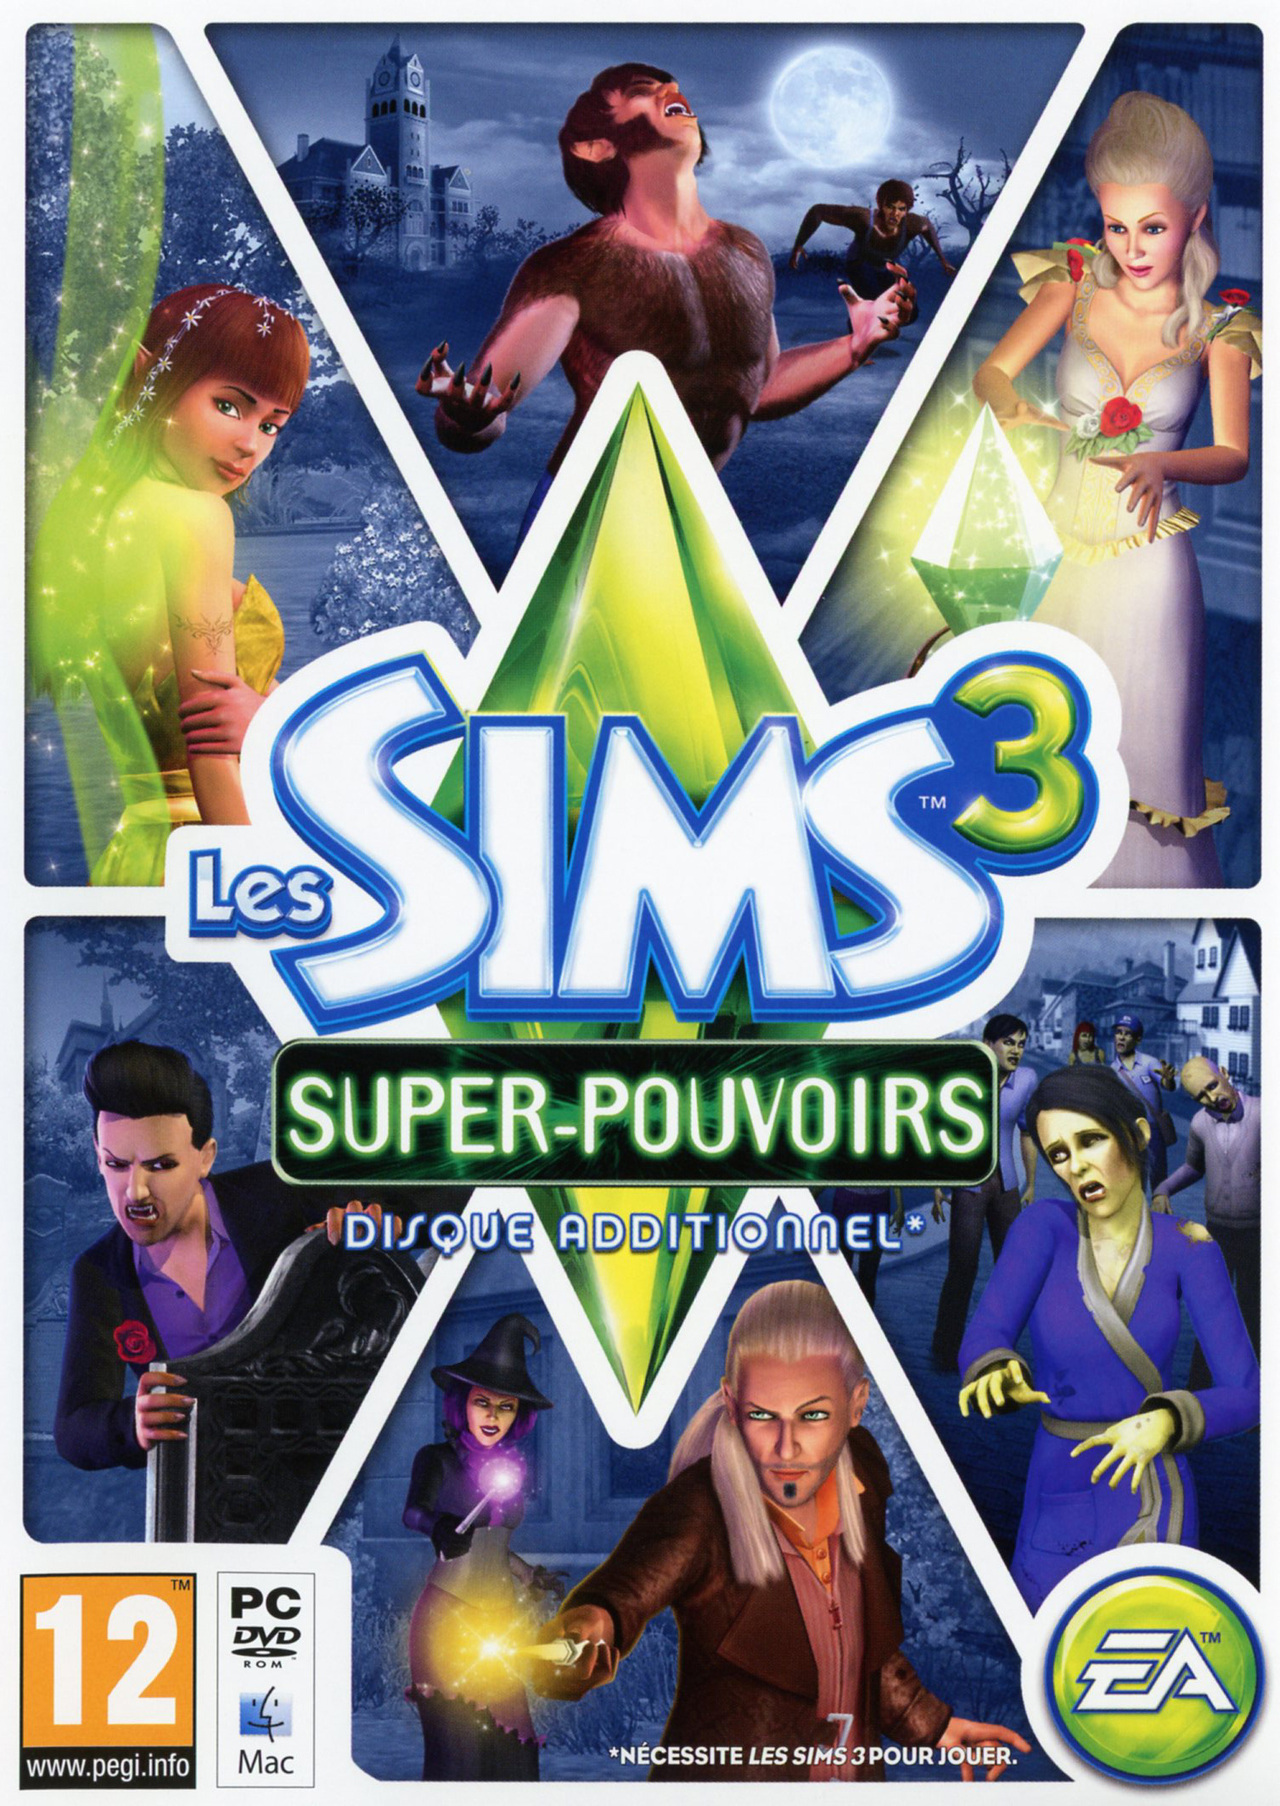 acheter les sims 3 supernatural code jeux vid o pc simulation. Black Bedroom Furniture Sets. Home Design Ideas